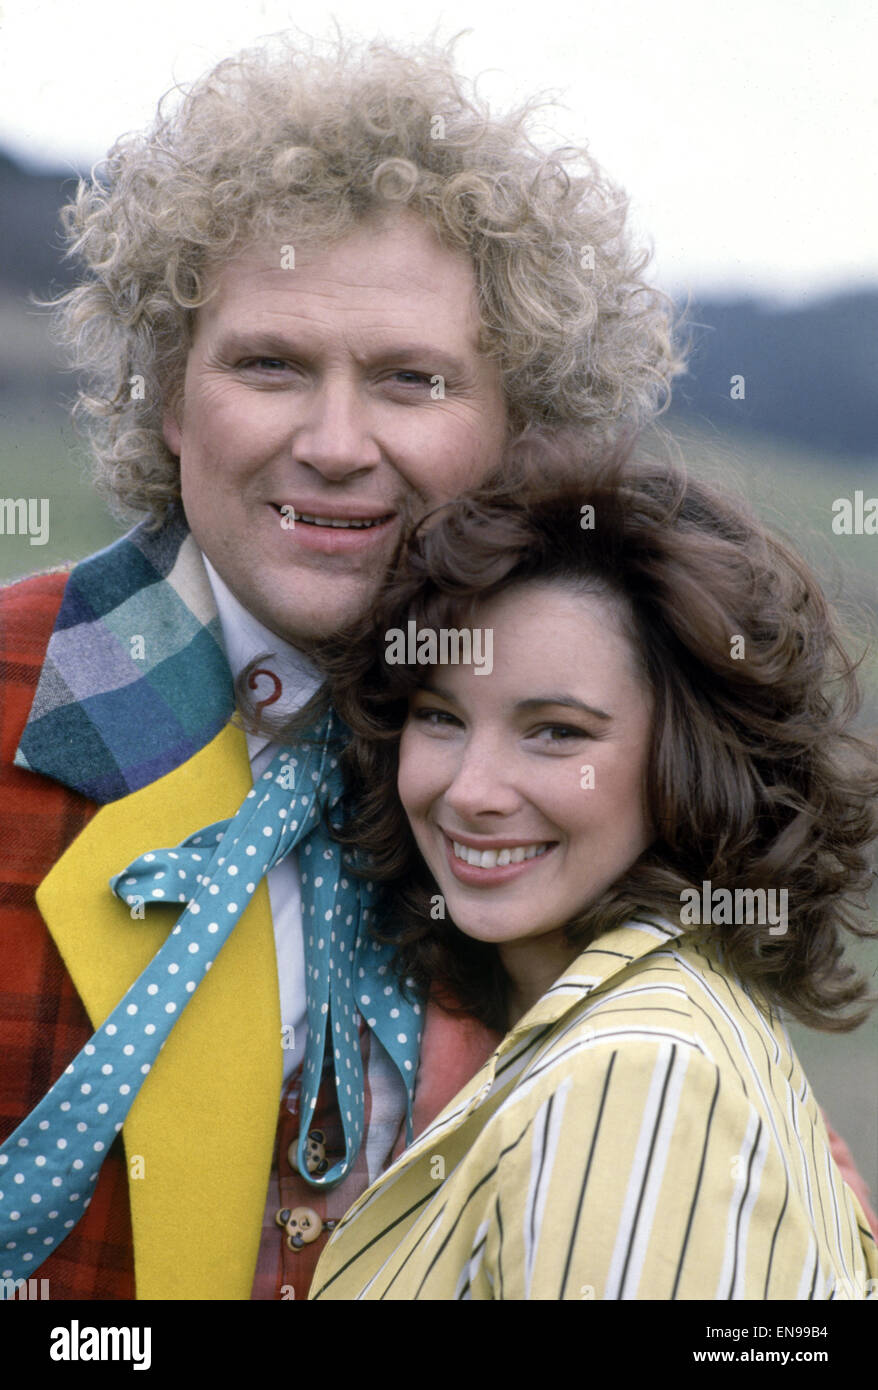 Actor Colin Baker, who plays Doctor Who in the BBC science fiction programme, photographed with his assistant Nicola - Stock Image